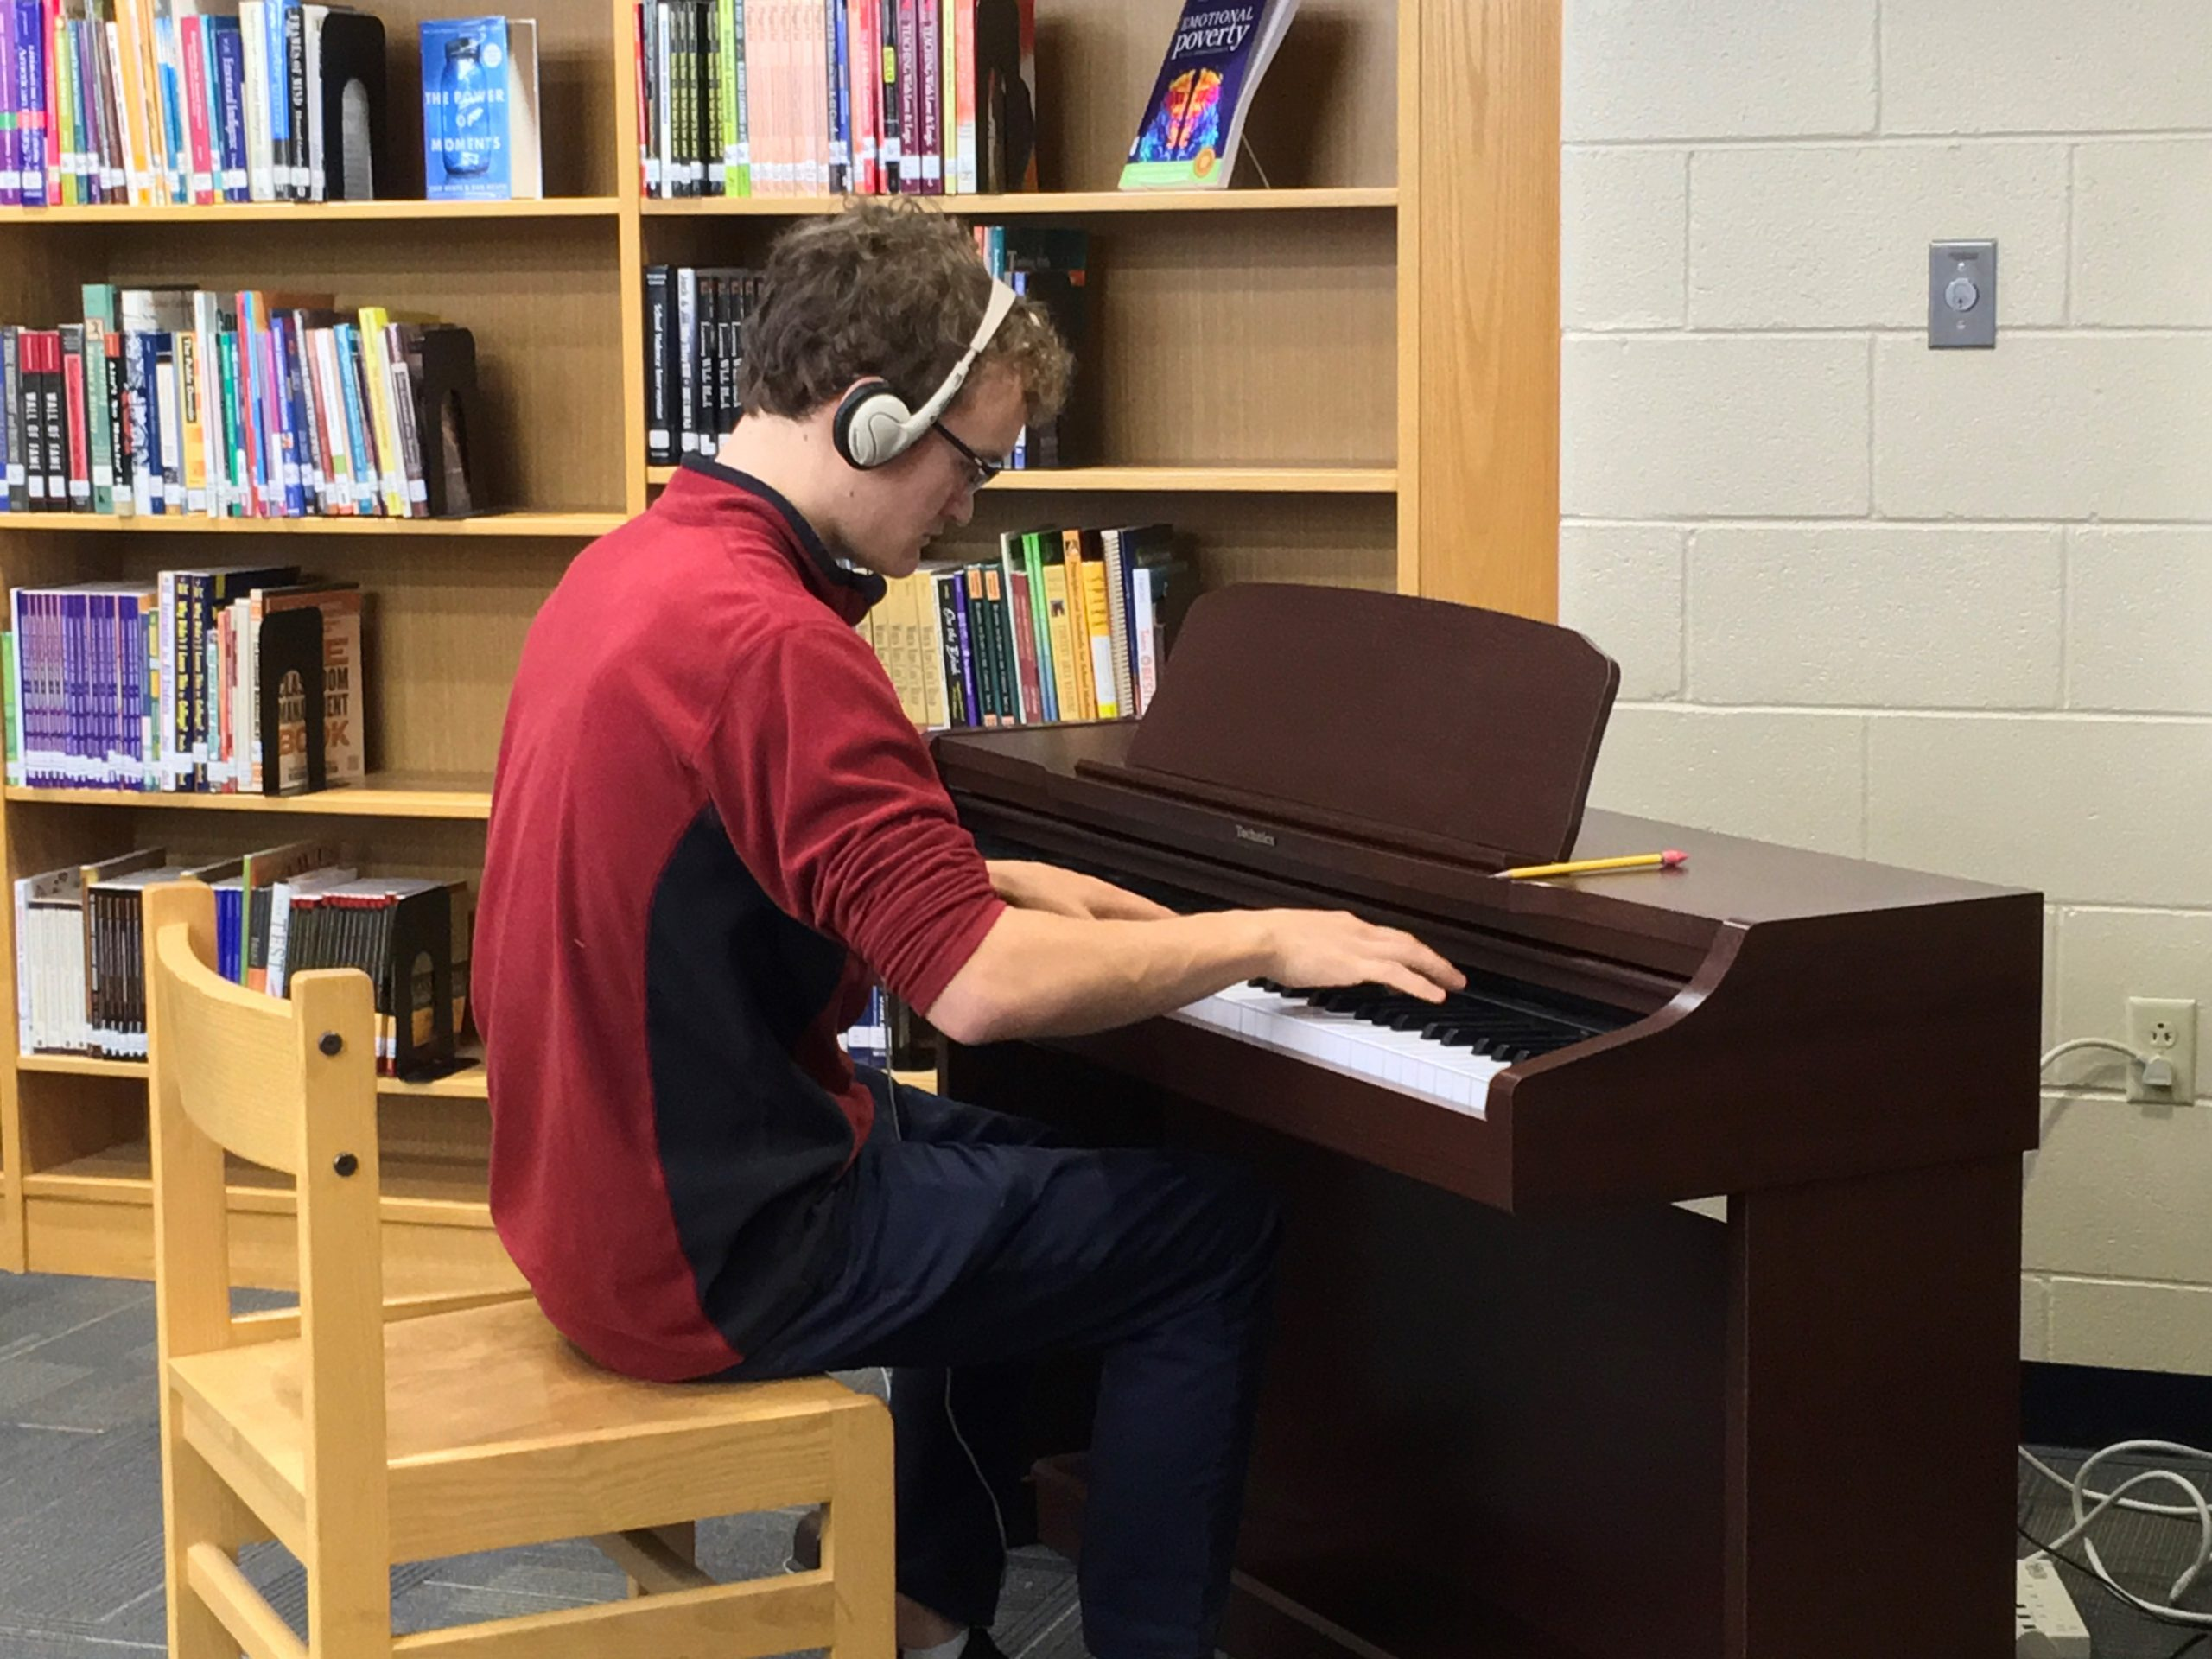 A student plays piano in the library.